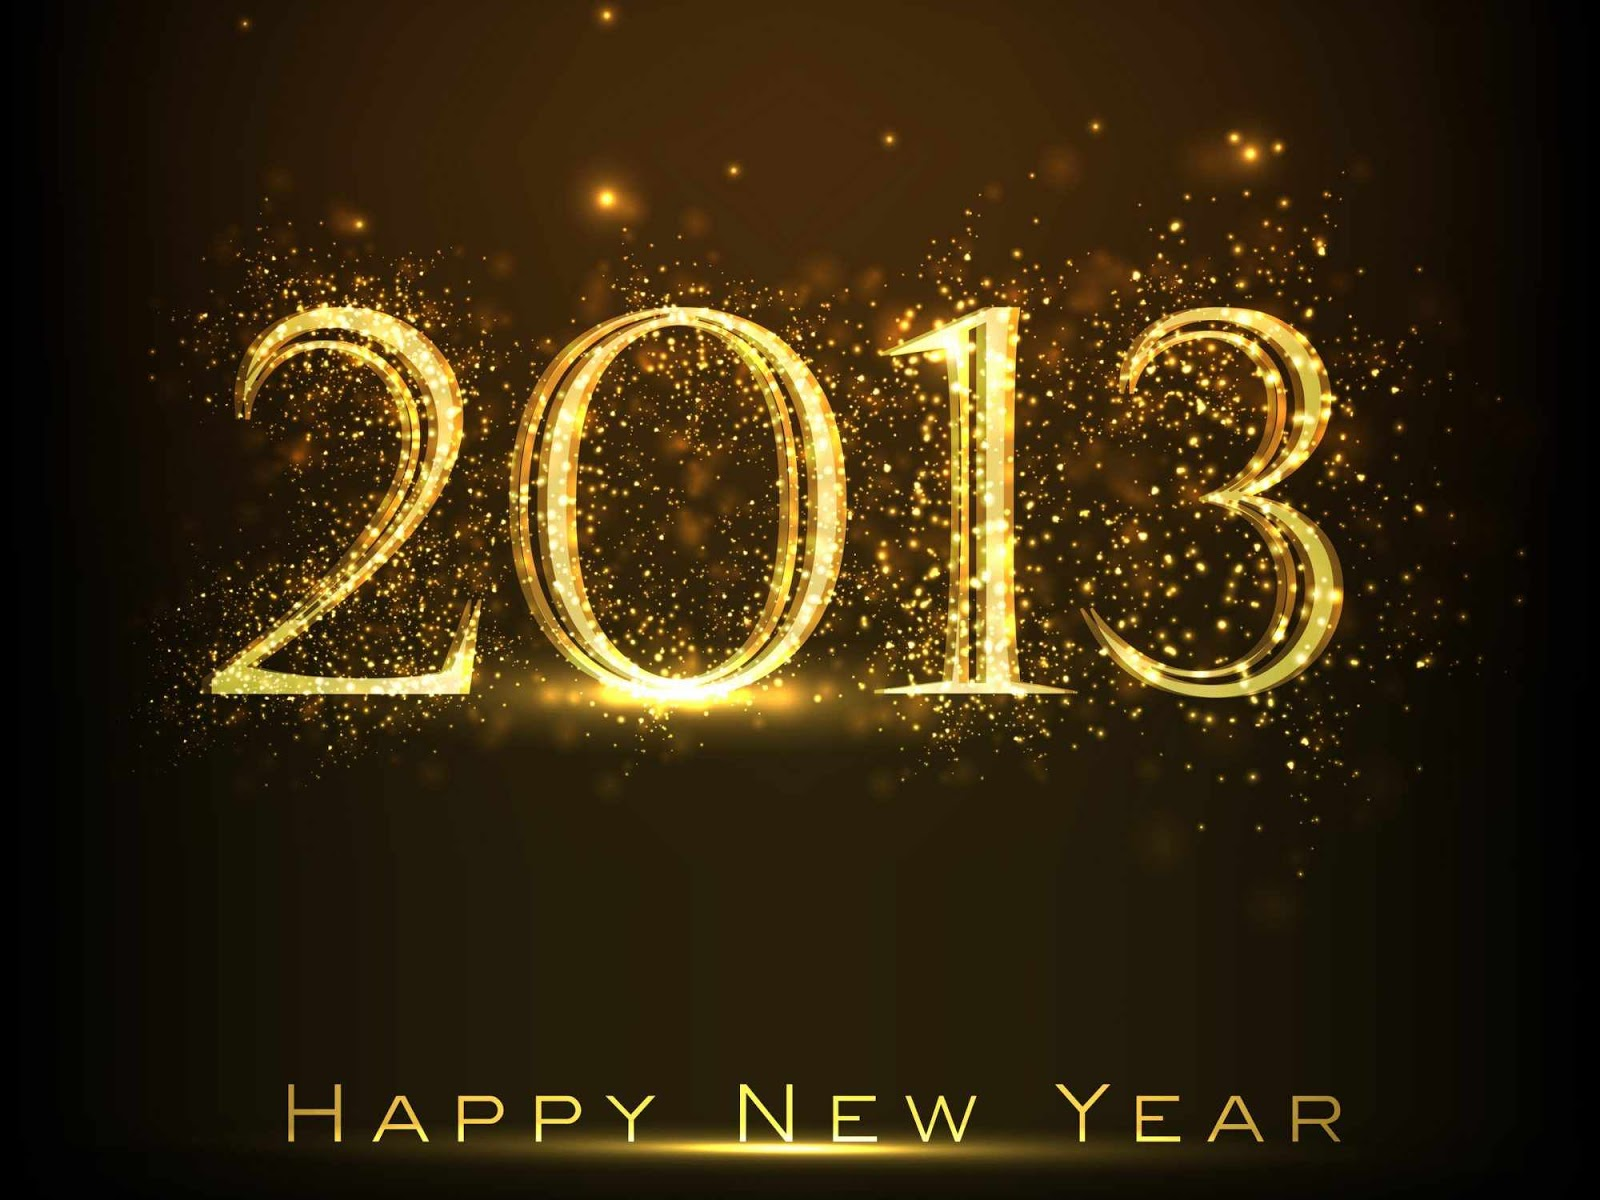 Posted By Shanti Saha At 0348. 1600 x 1200.Happy New Year Profile Pics